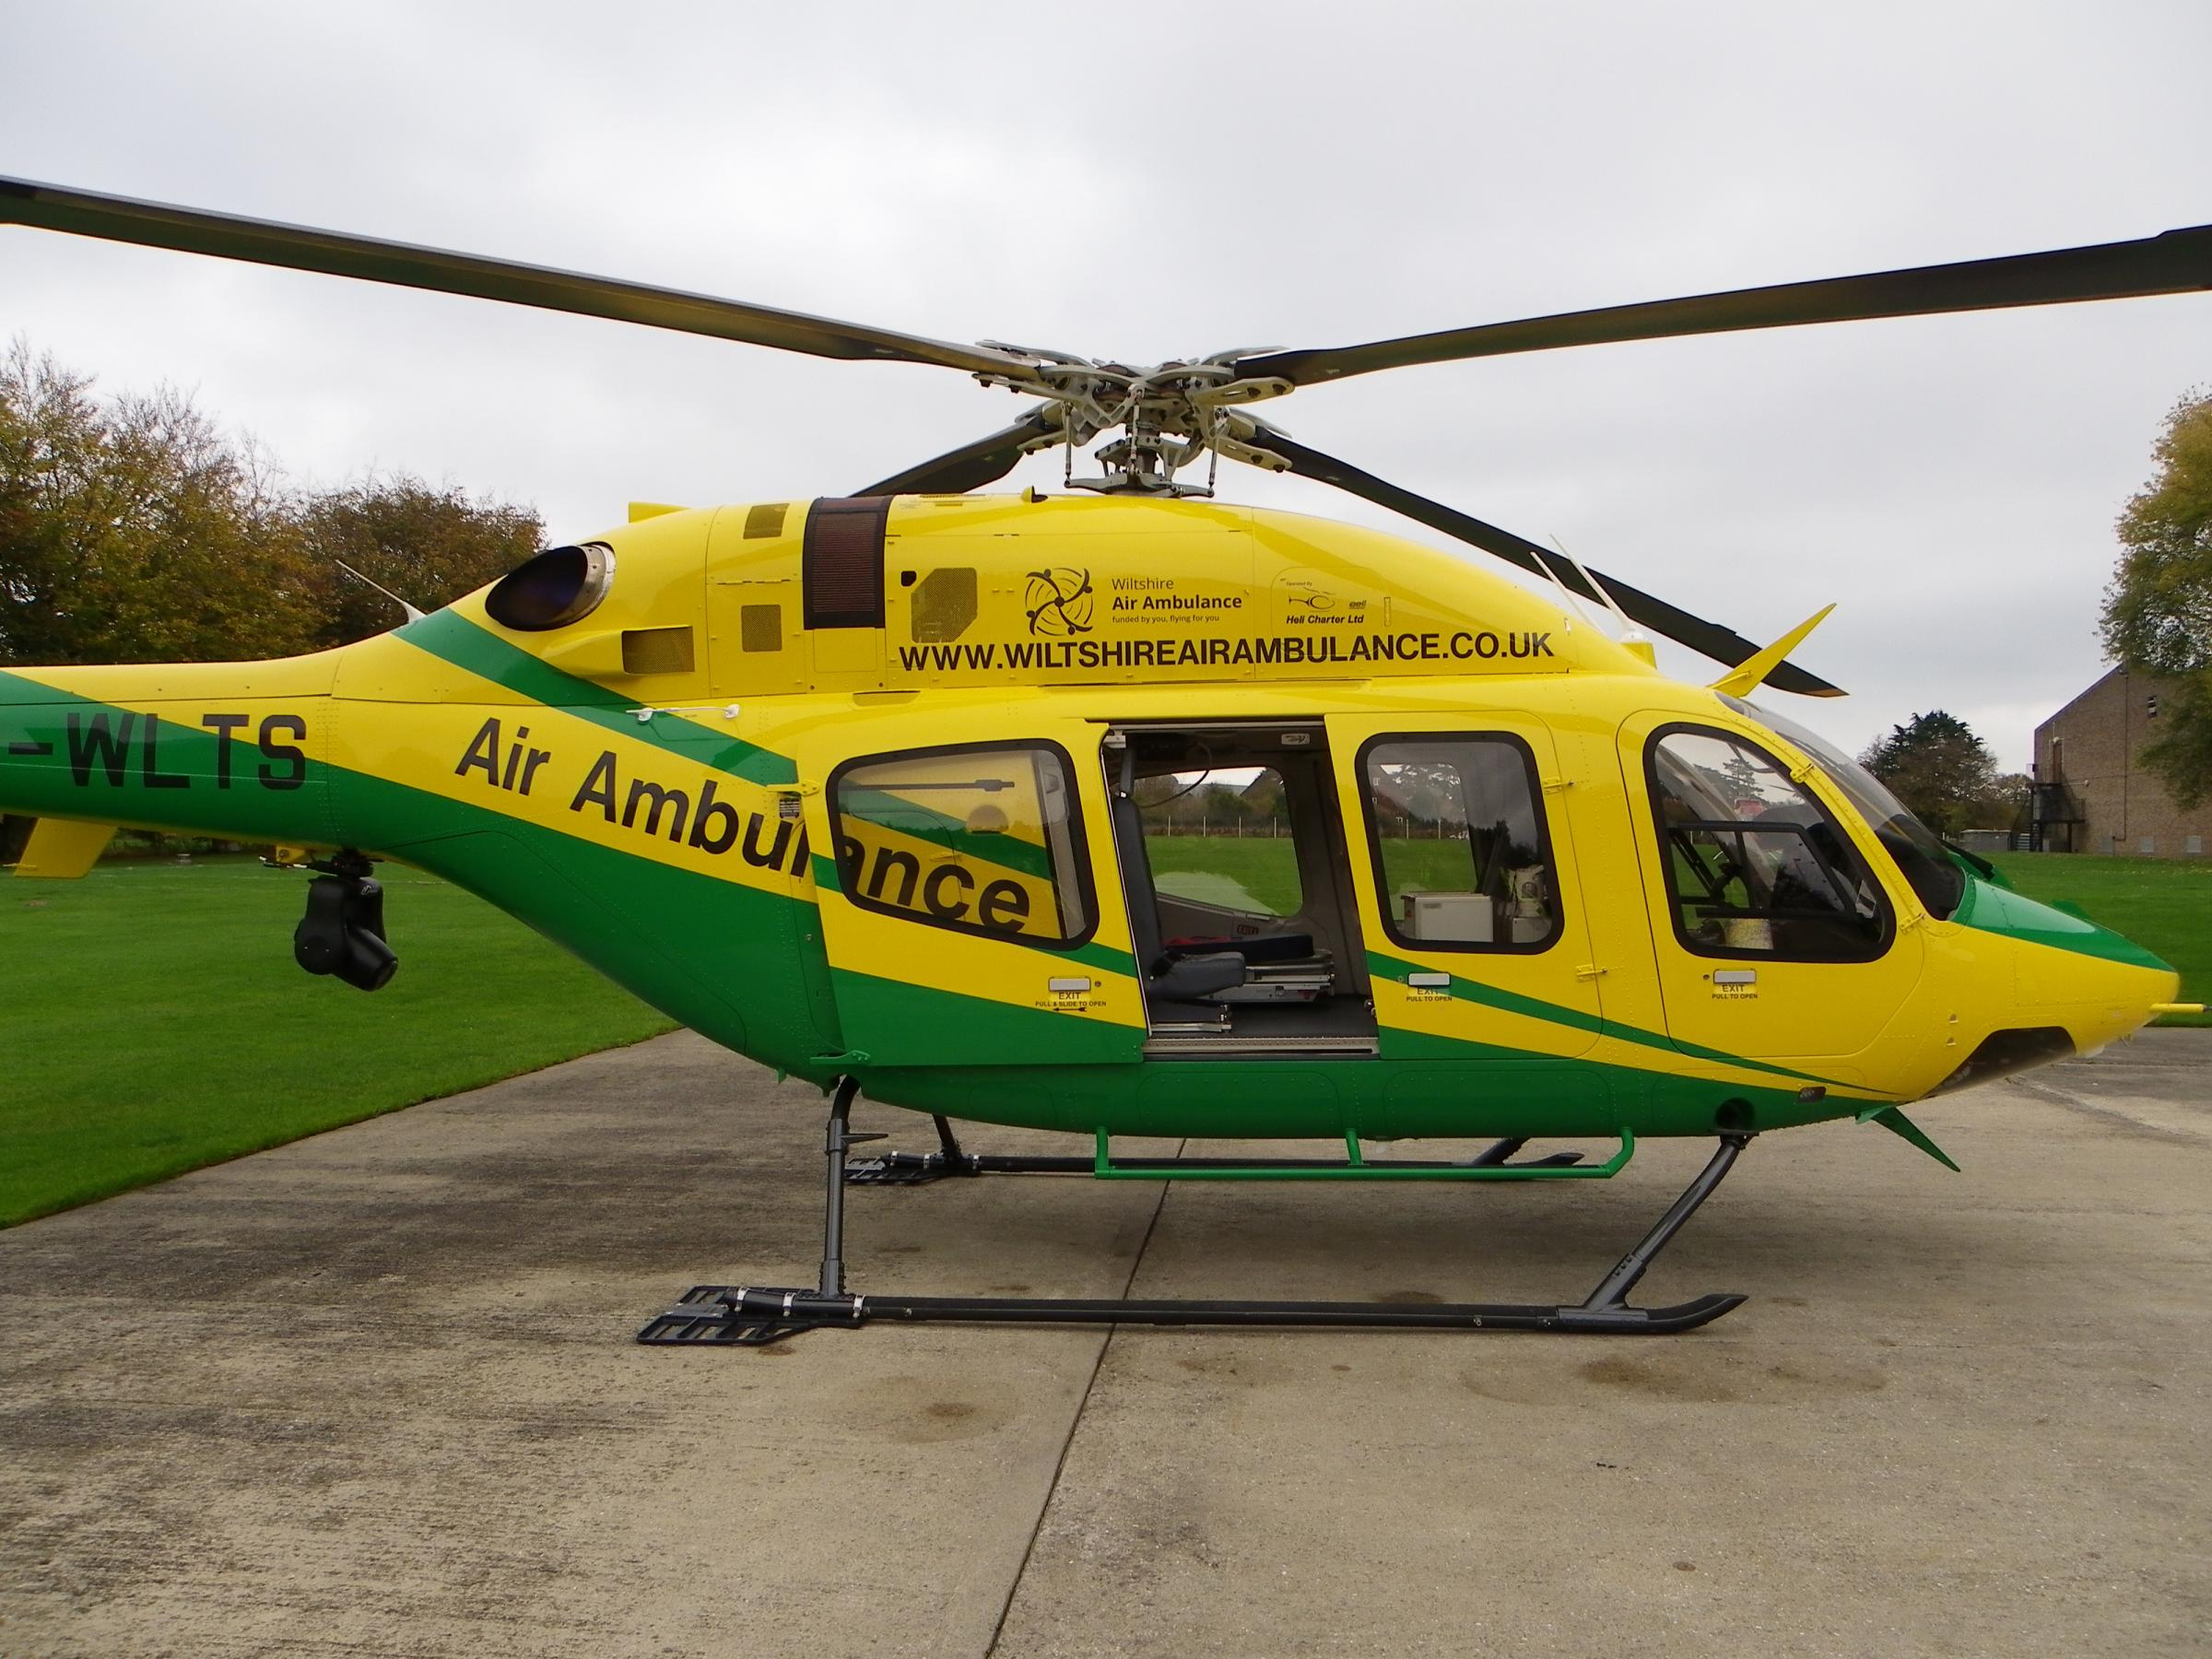 New £5m Wiltshire Air Ambulance goes into service | The